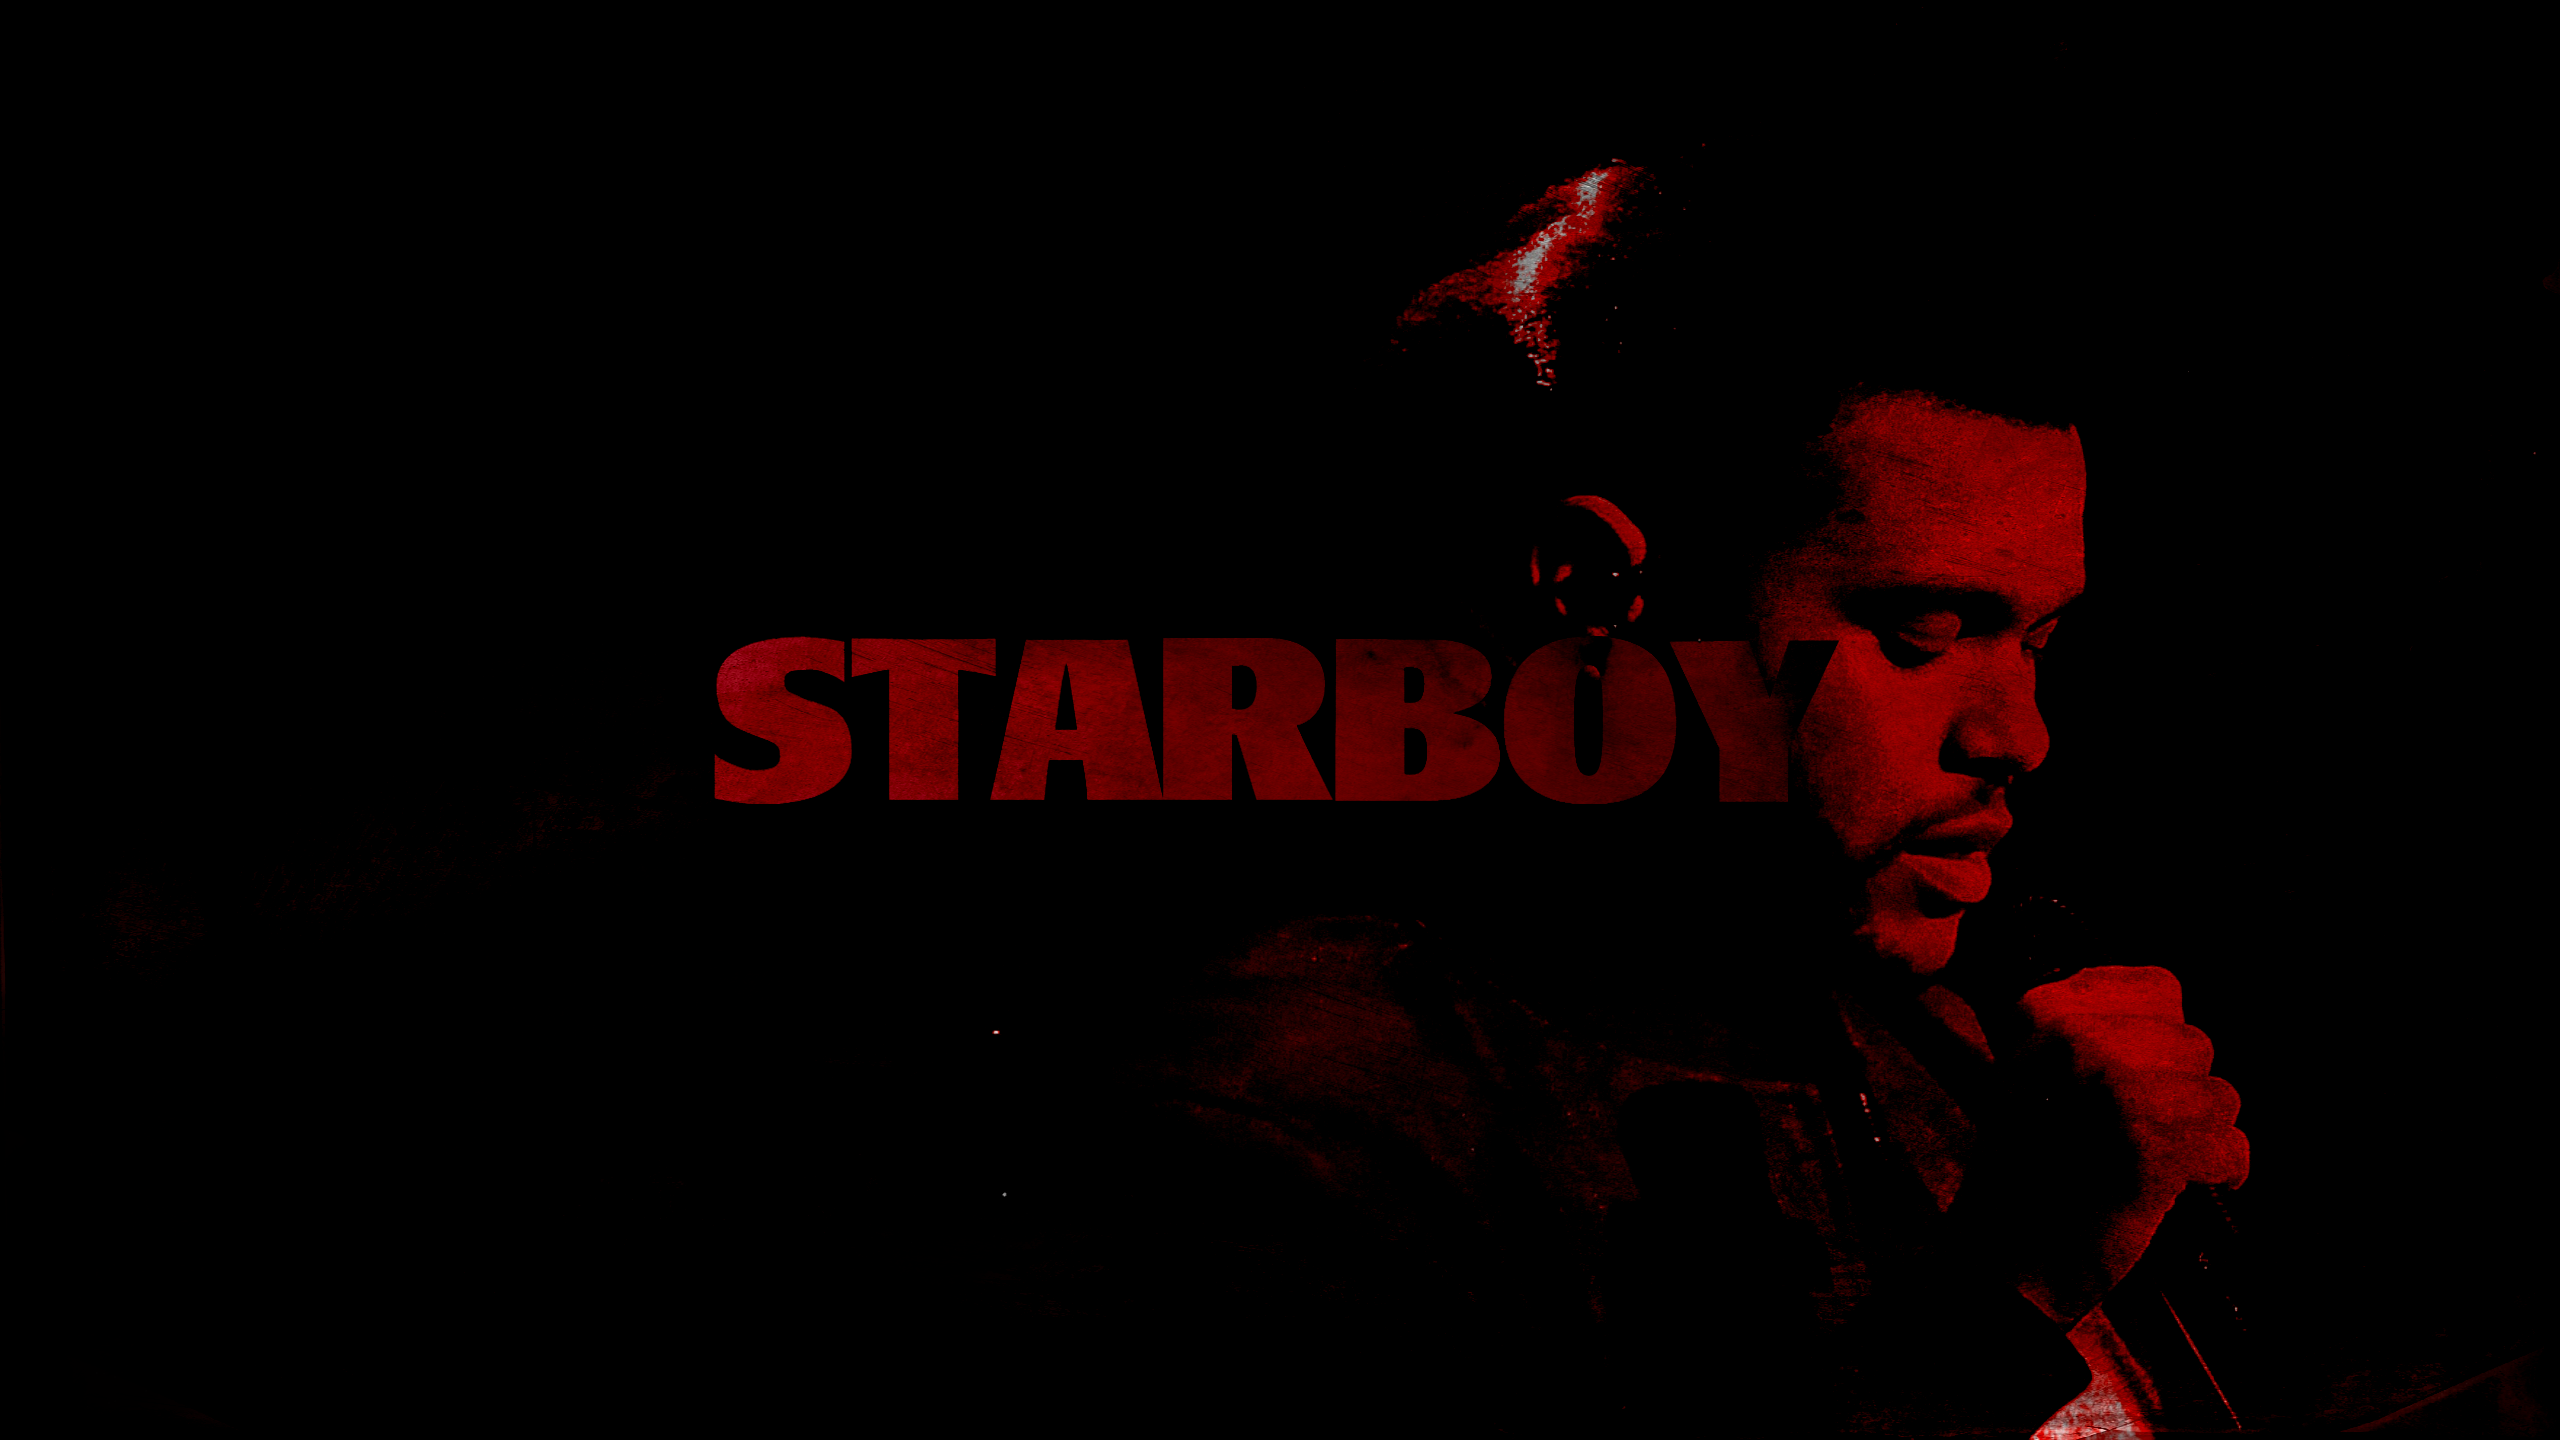 The Weeknd HD Wallpaper | Background Image | 2560x1440 | ID:904194 - Wallpaper Abyss